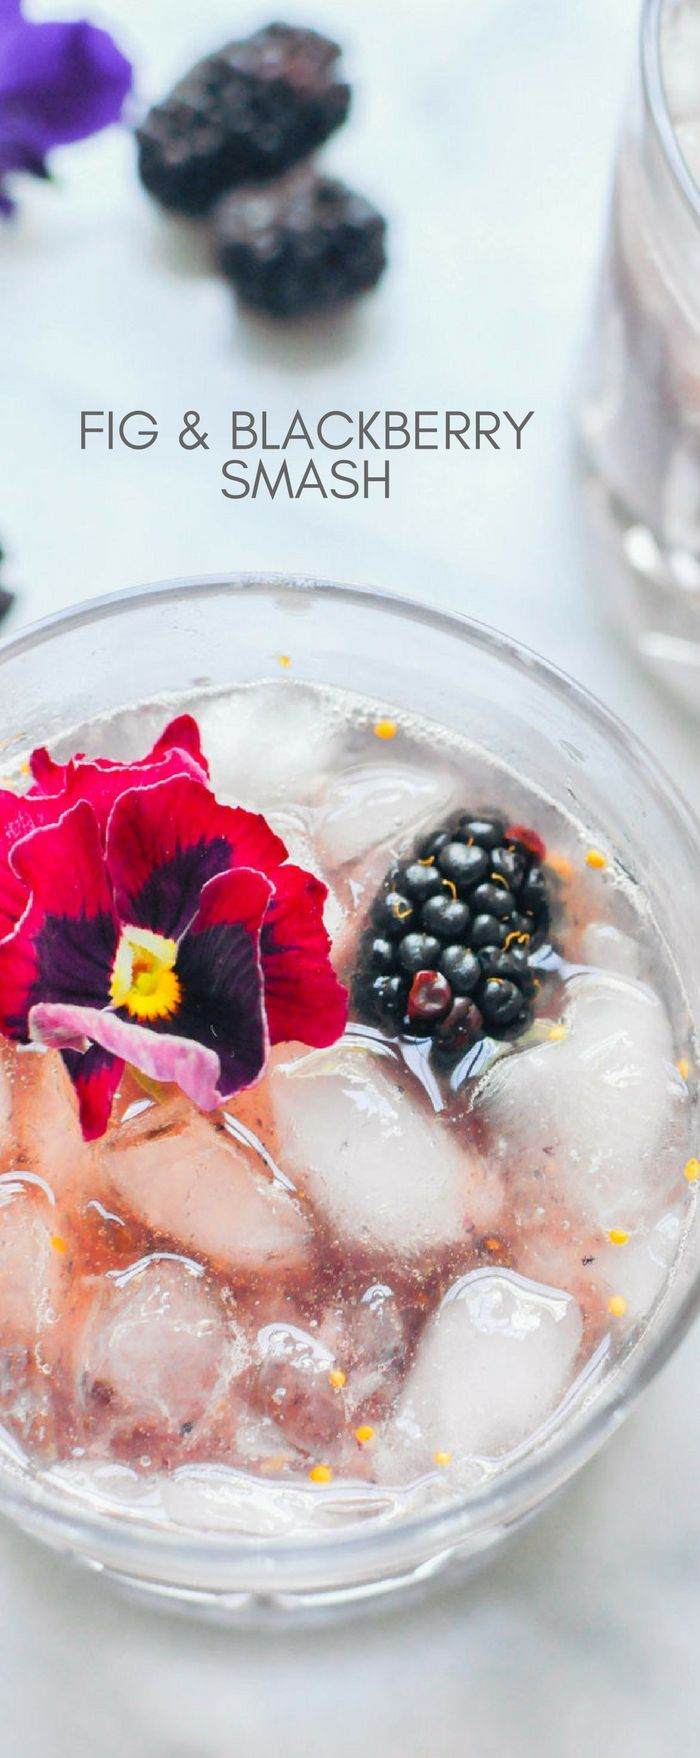 Do you need a happy hour cocktail recipe? This fig and blackberry smash is delicious! It has simple syrup, blackberries, a fig, bourbon, and crushed ice. Bonus if you add edible flowers!